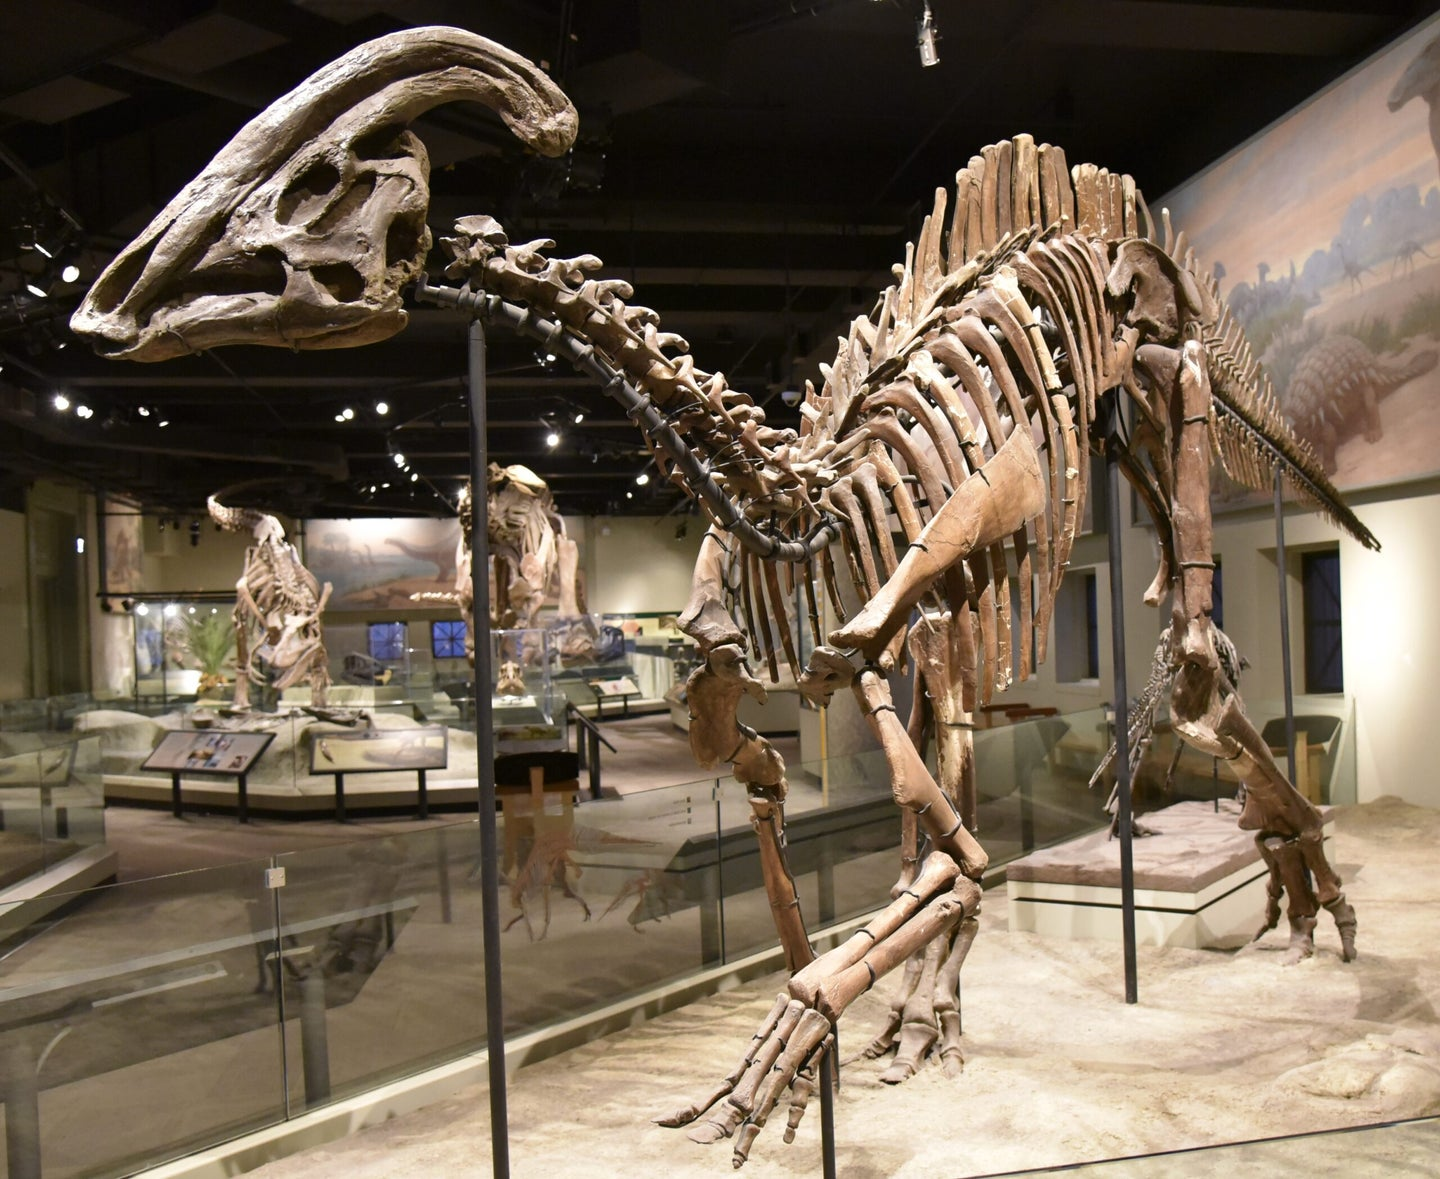 Photograph of Parasaurolophus fossil mount at the Field Museum of Natural History, Chicago, Illinois, 2017